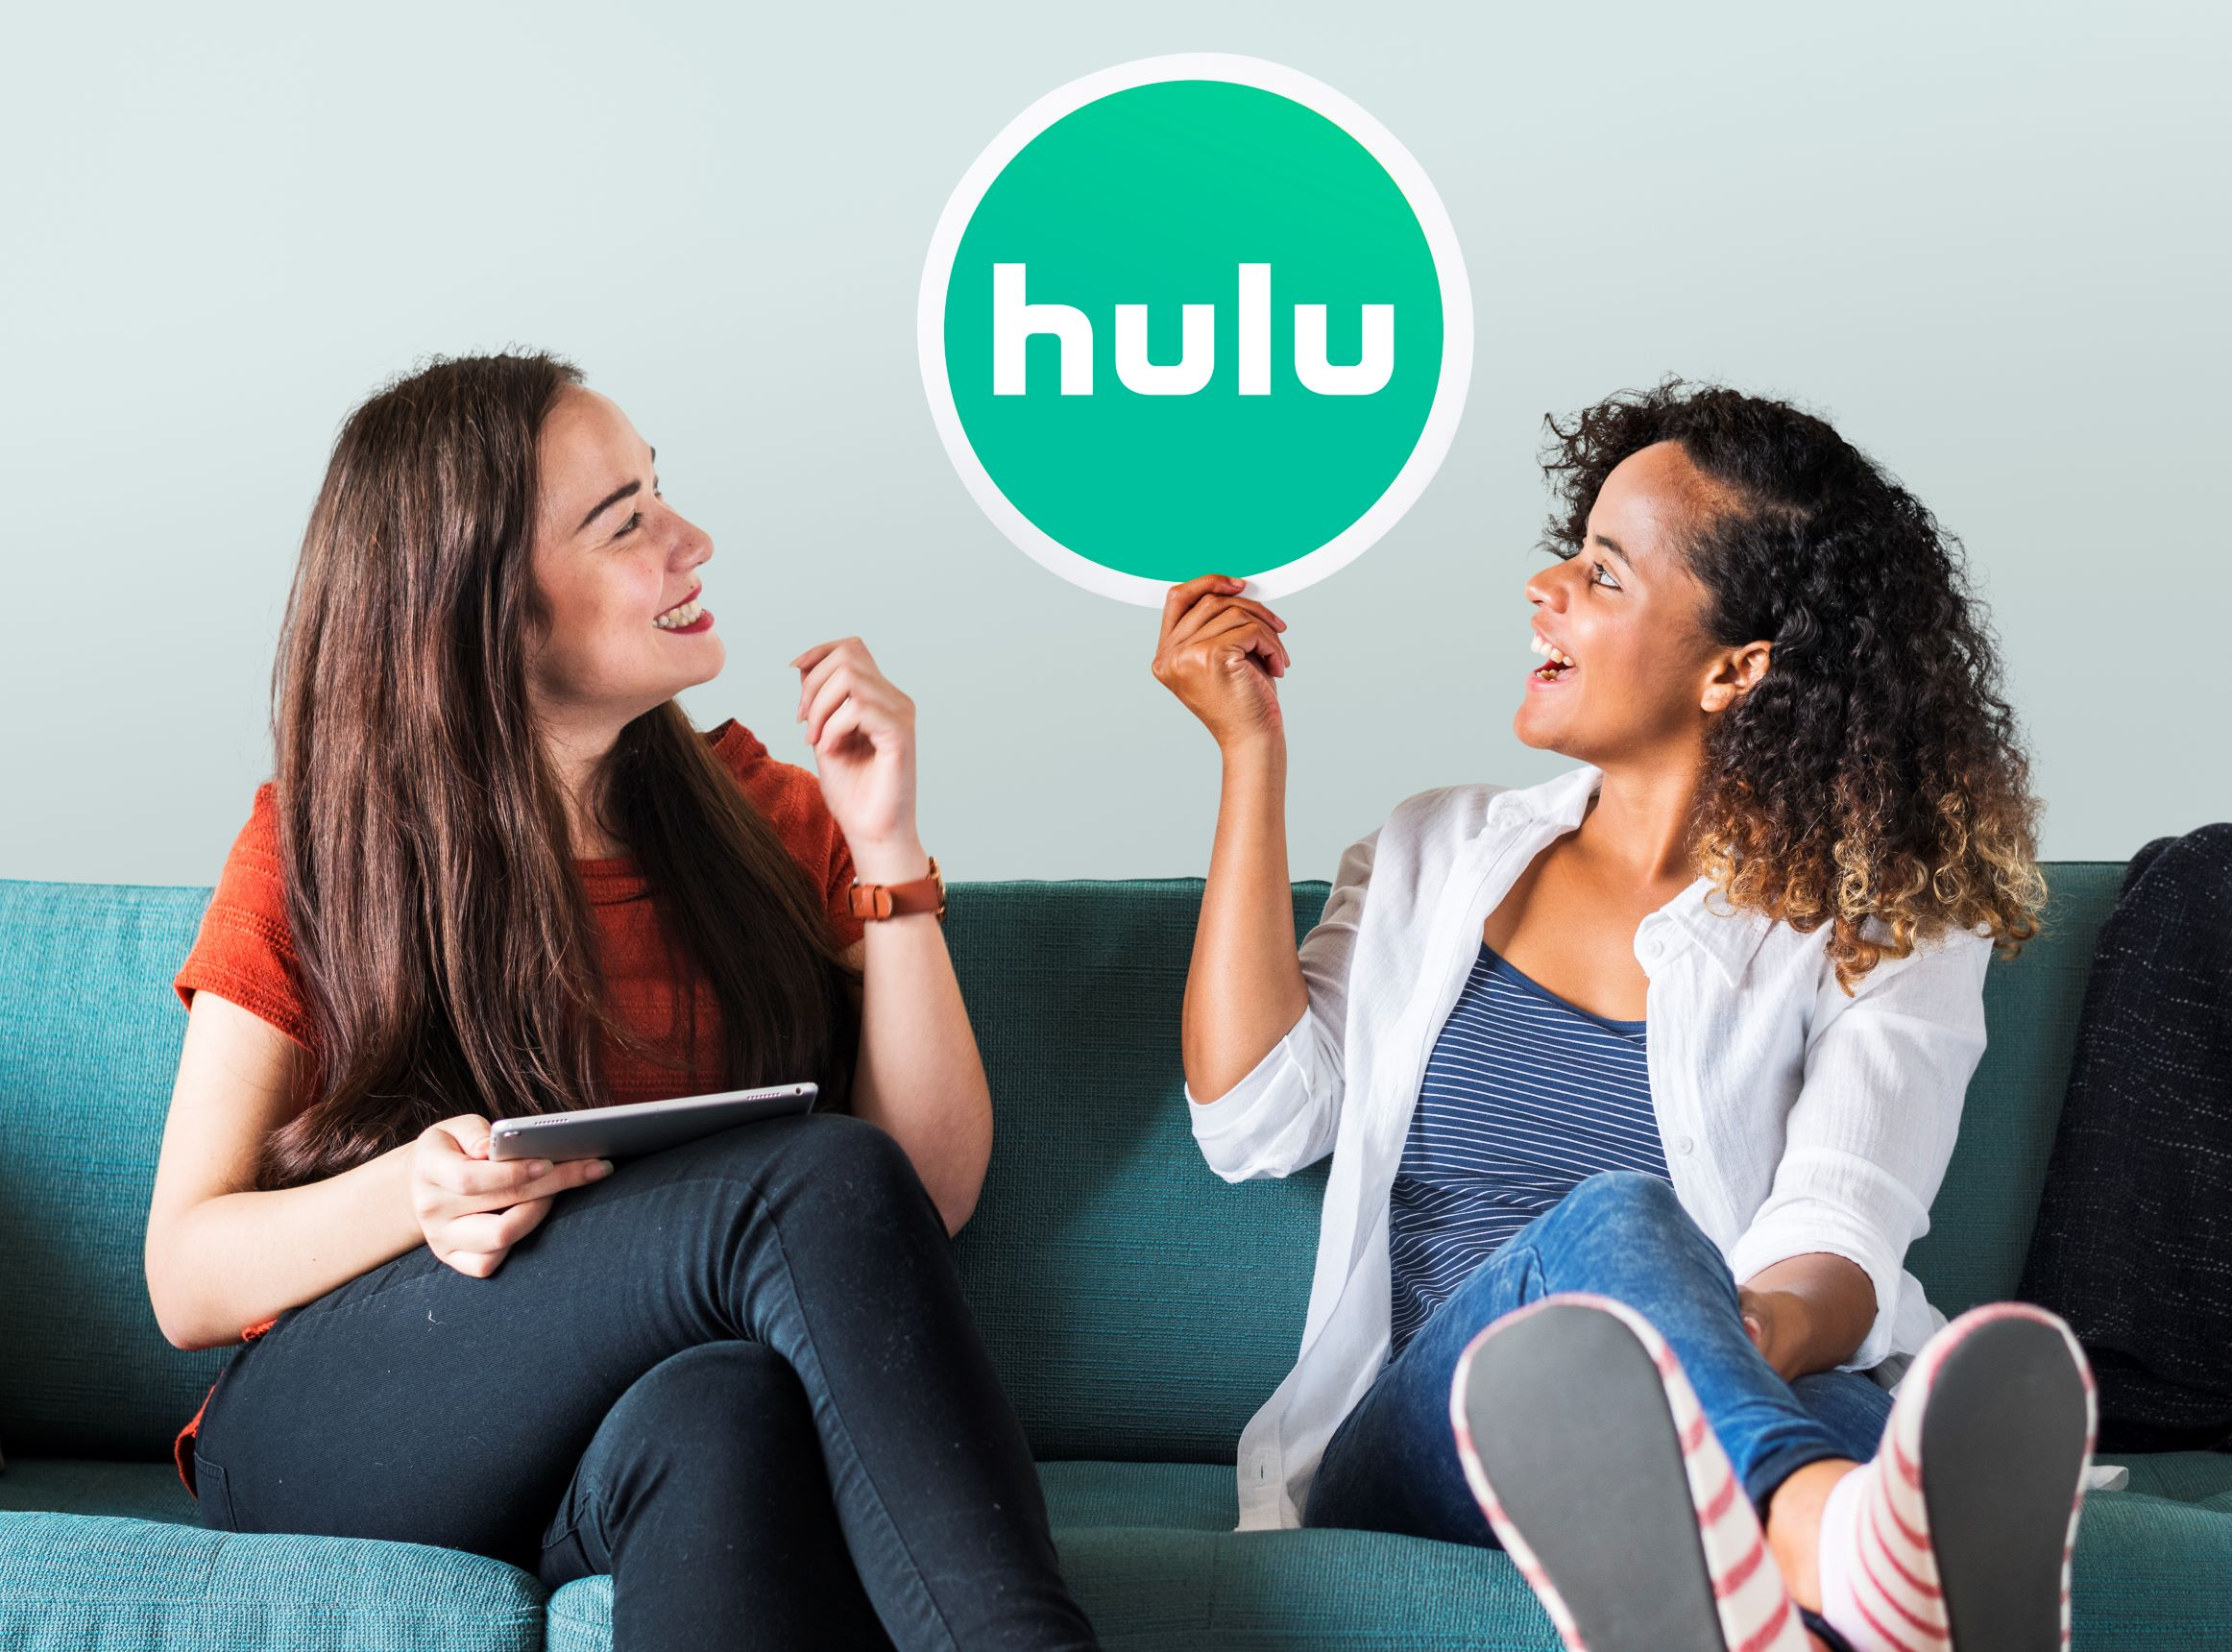 Streaming-Blog-Two-Girls-on-Couch-Holding-Hulu-Sign.jpg